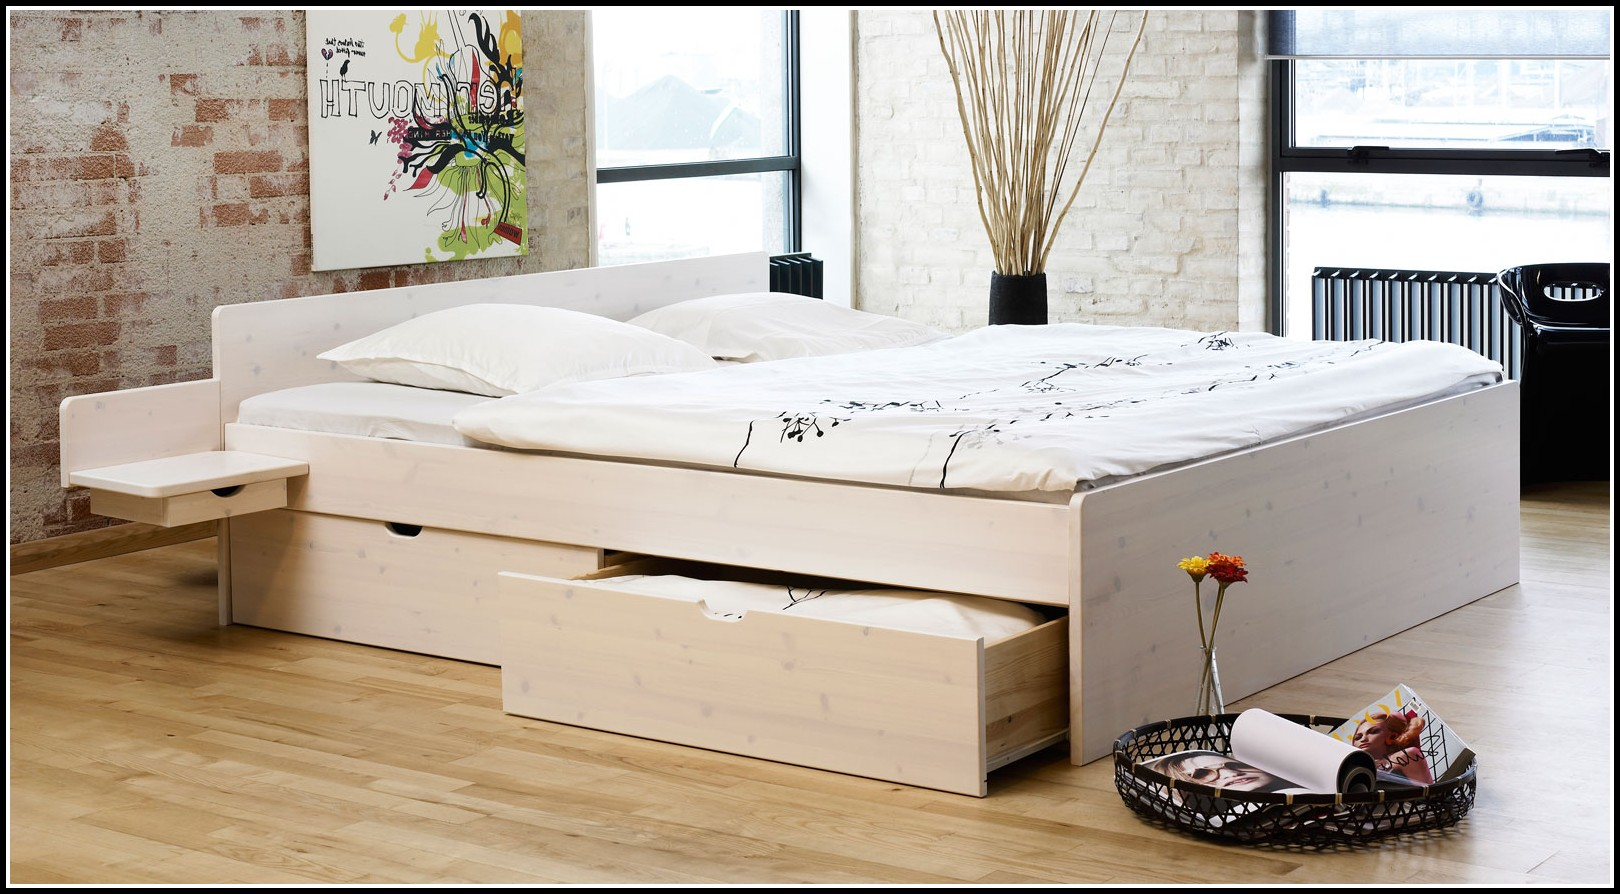 ikea bett weiss mit schubladen betten house und dekor. Black Bedroom Furniture Sets. Home Design Ideas